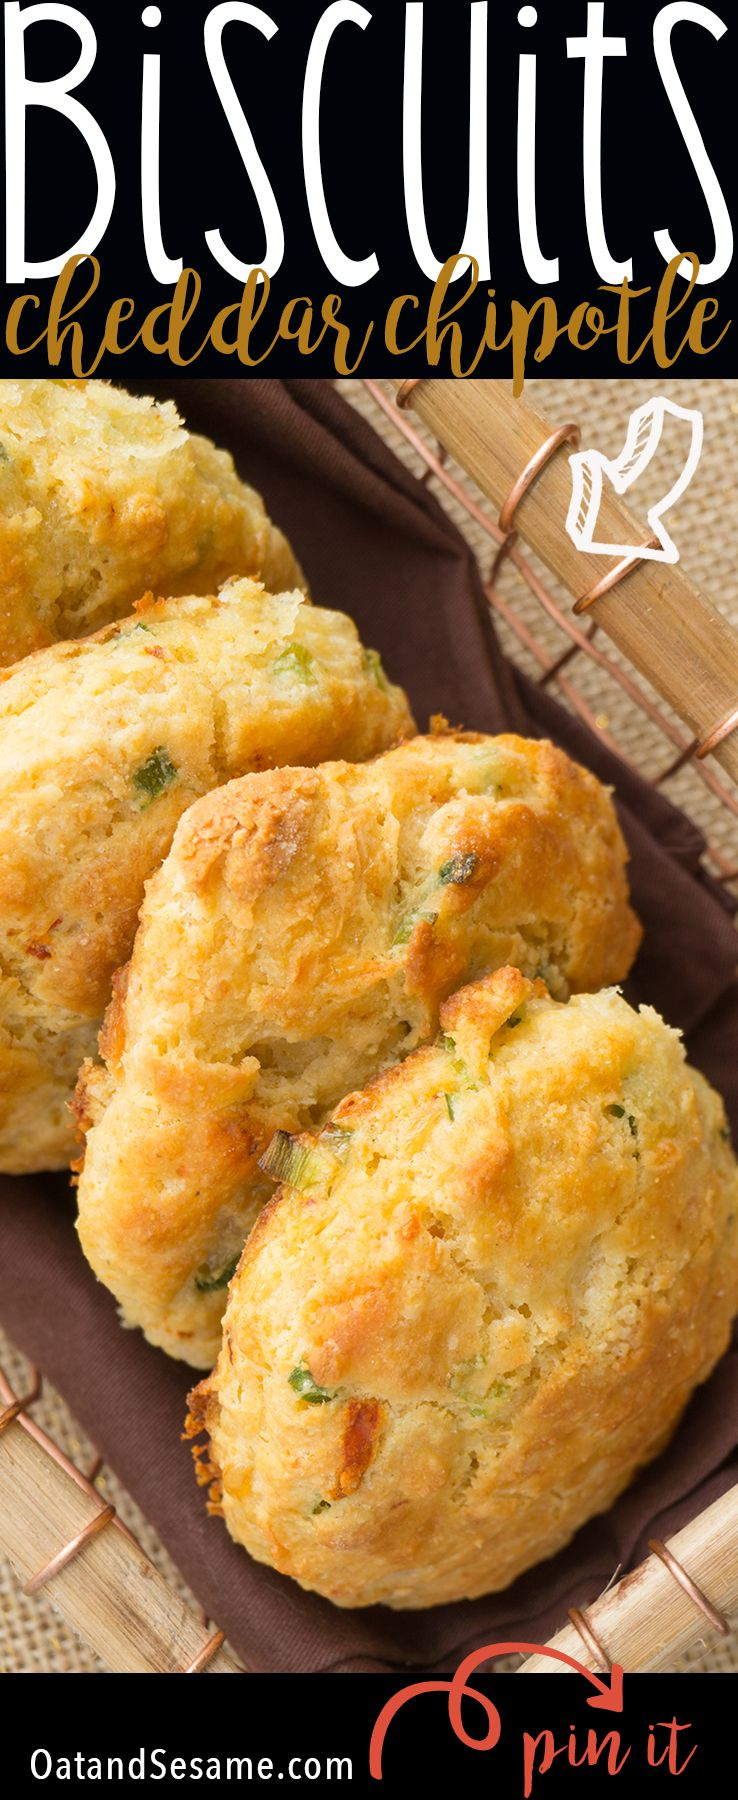 WHITE CHEDDAR CHIPOTLE CORNMEAL BISCUITS. Cheesy Savory Biscuits that are crumbly and tender. So easy and perfect for Breakfast, Lunch and Dinner! | #BISCUITS | #Recipe at OatandSesame.com